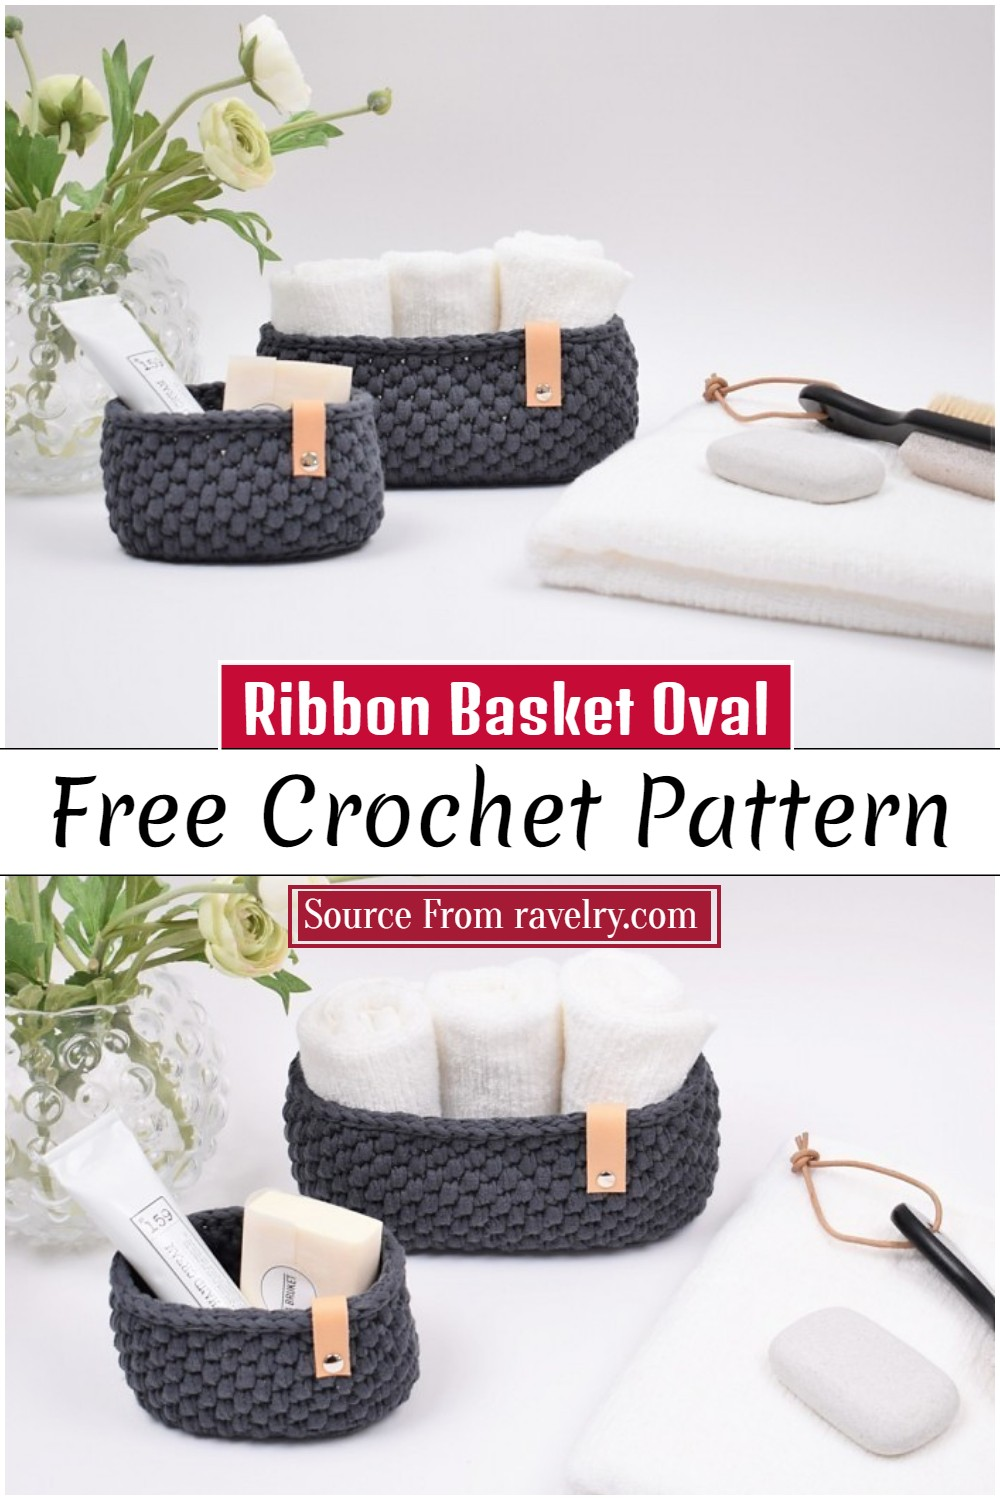 Crochet Ribbon Basket Oval Pattern 1